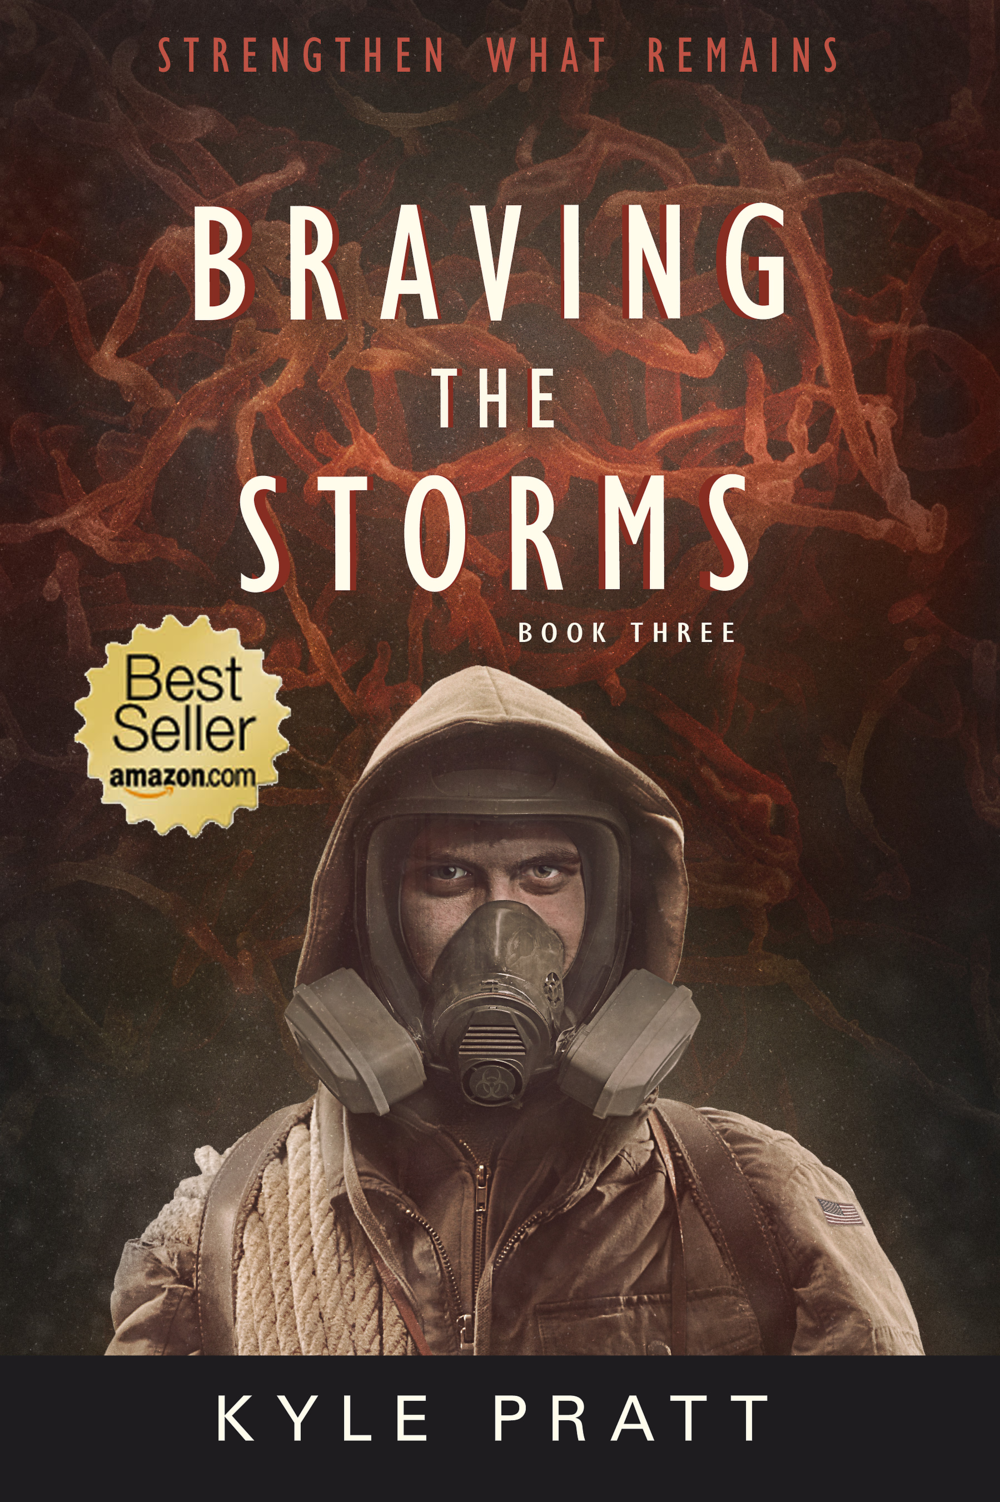 Braving the Storms    The third full-length novel in the Strengthen What Remains series.   A swift and deadly flu epidemic sweeps out of overcrowded FEMA camps and strikes the nation with horrific results. Caden Westmore struggles to keep his family and community safe, while others use the plague to advance their own military and political agendas. Caden must succeed, but how can he, when both the epidemic and chaos attack his hometown and family?